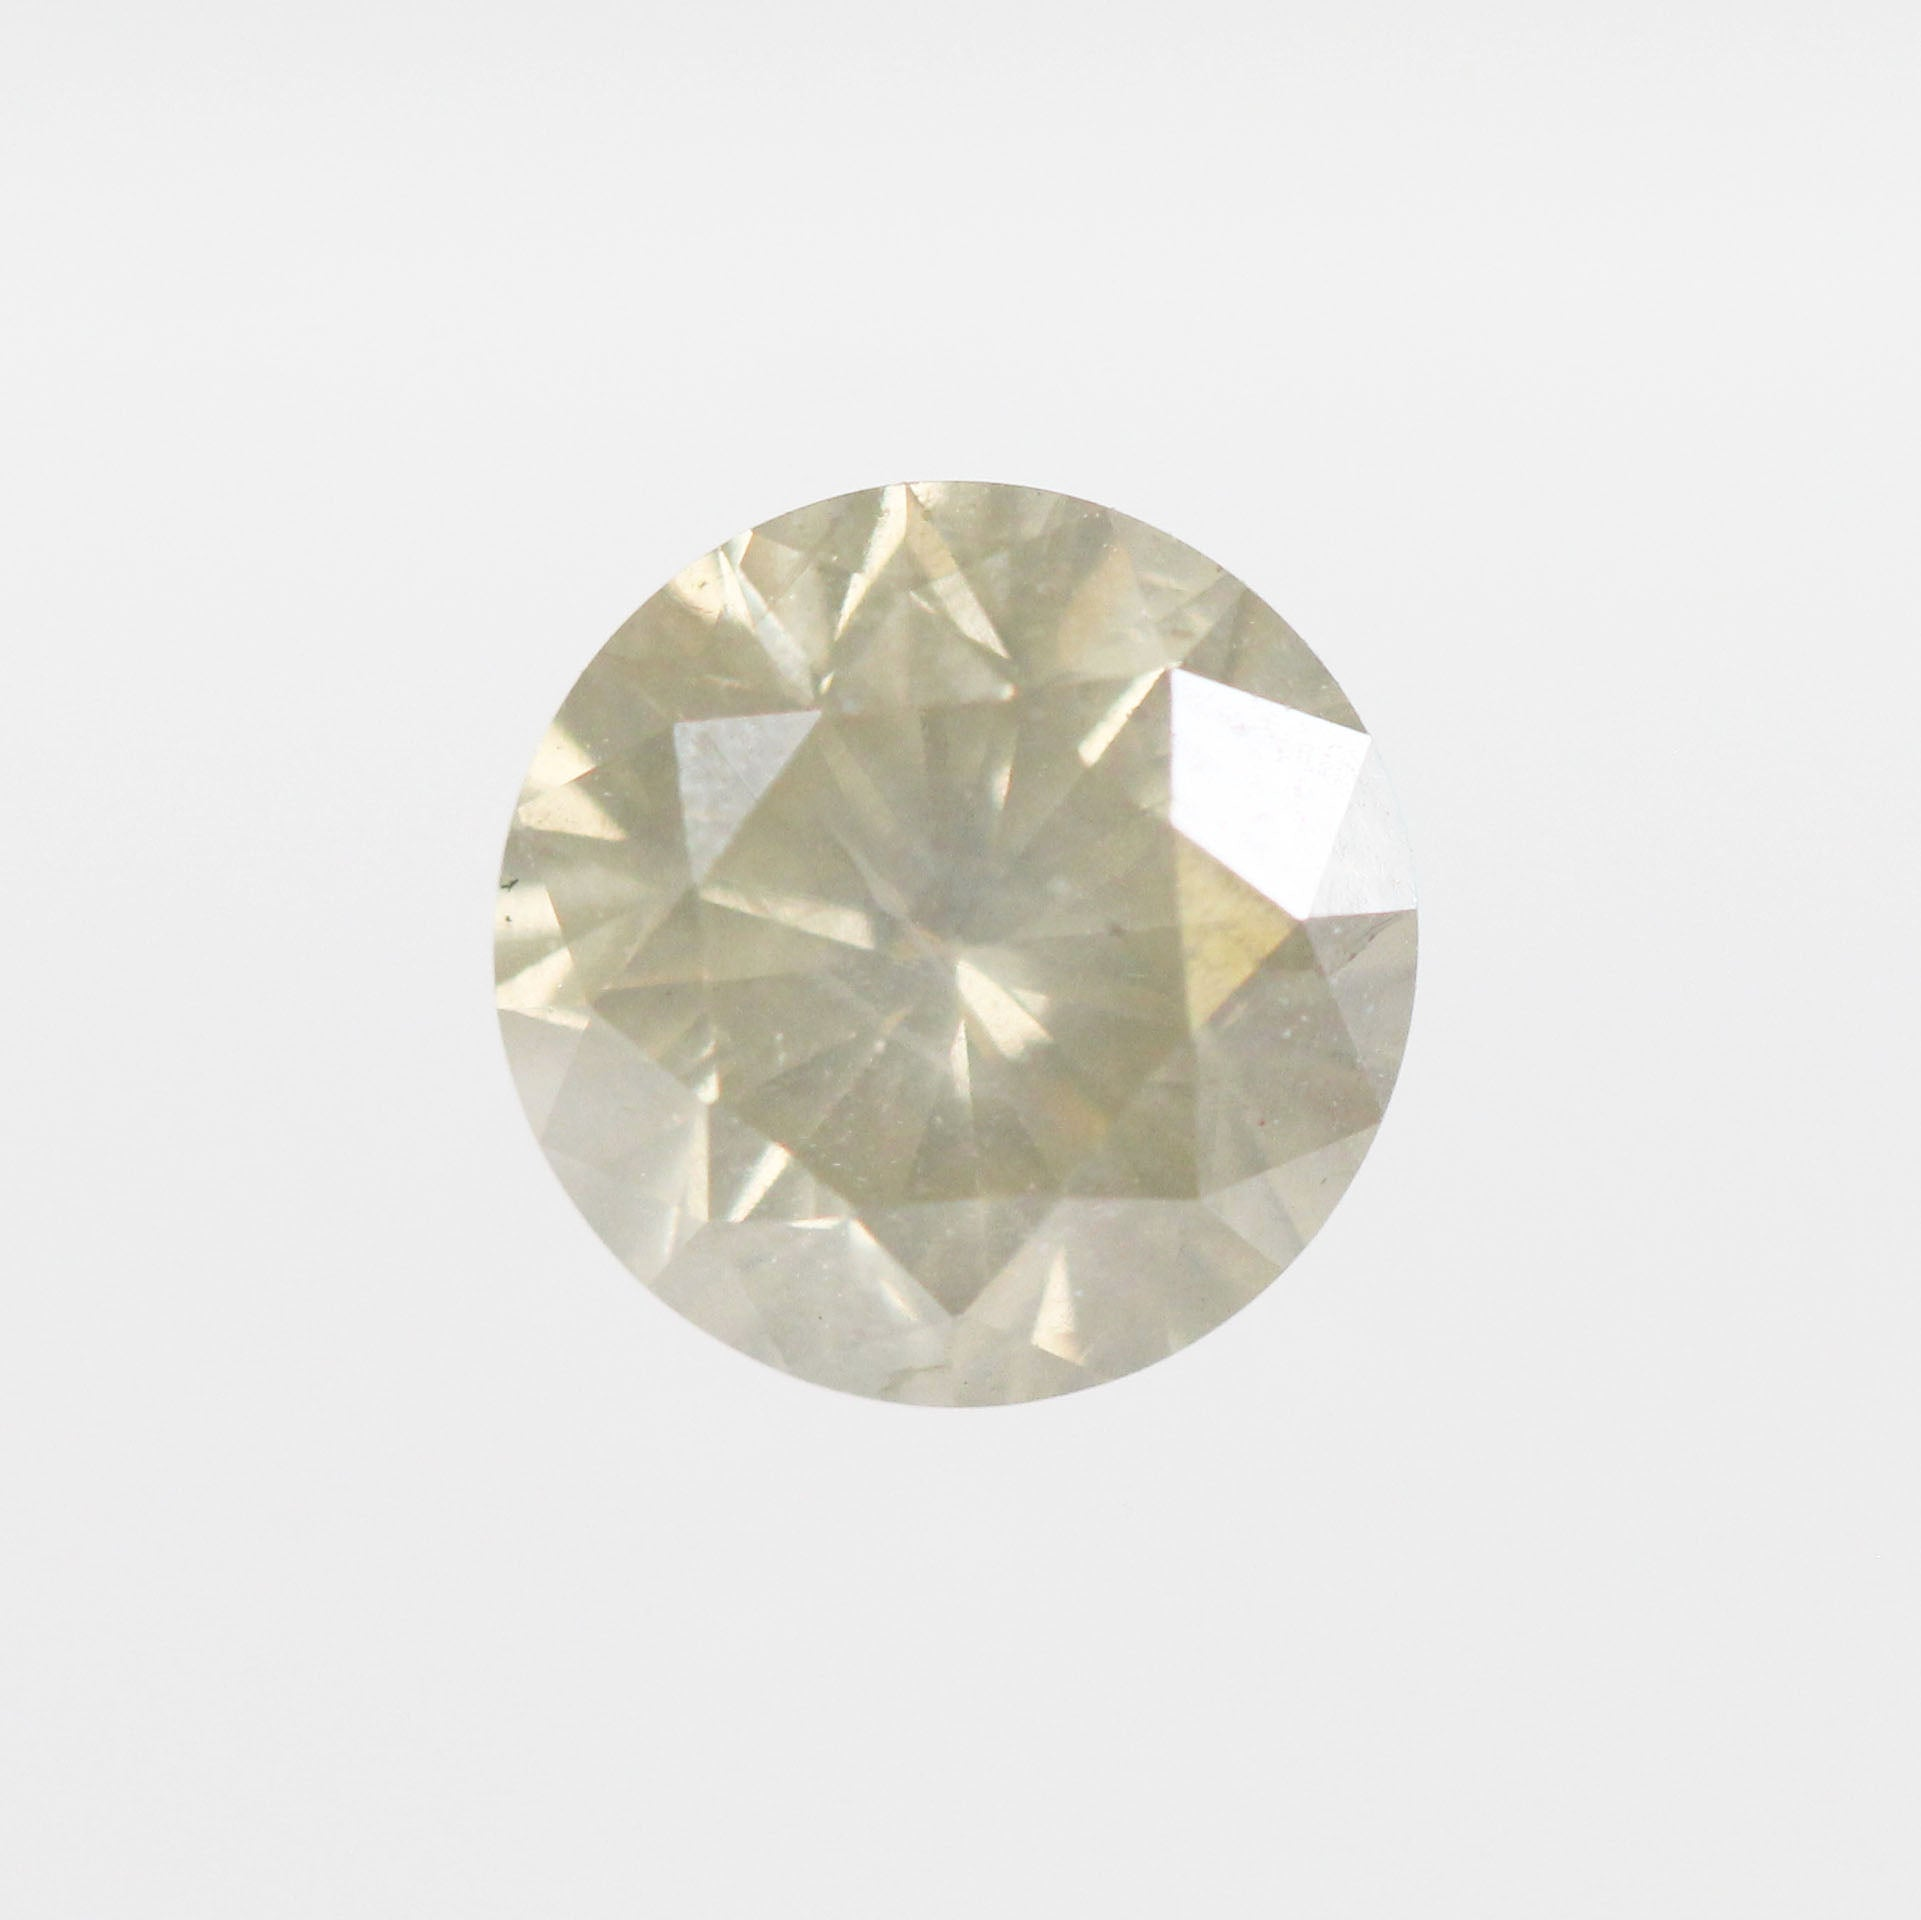 .85 Carat Round Celestial Diamond for Custom Work - Inventory Code RBY85 - Celestial Diamonds ® by Midwinter Co.